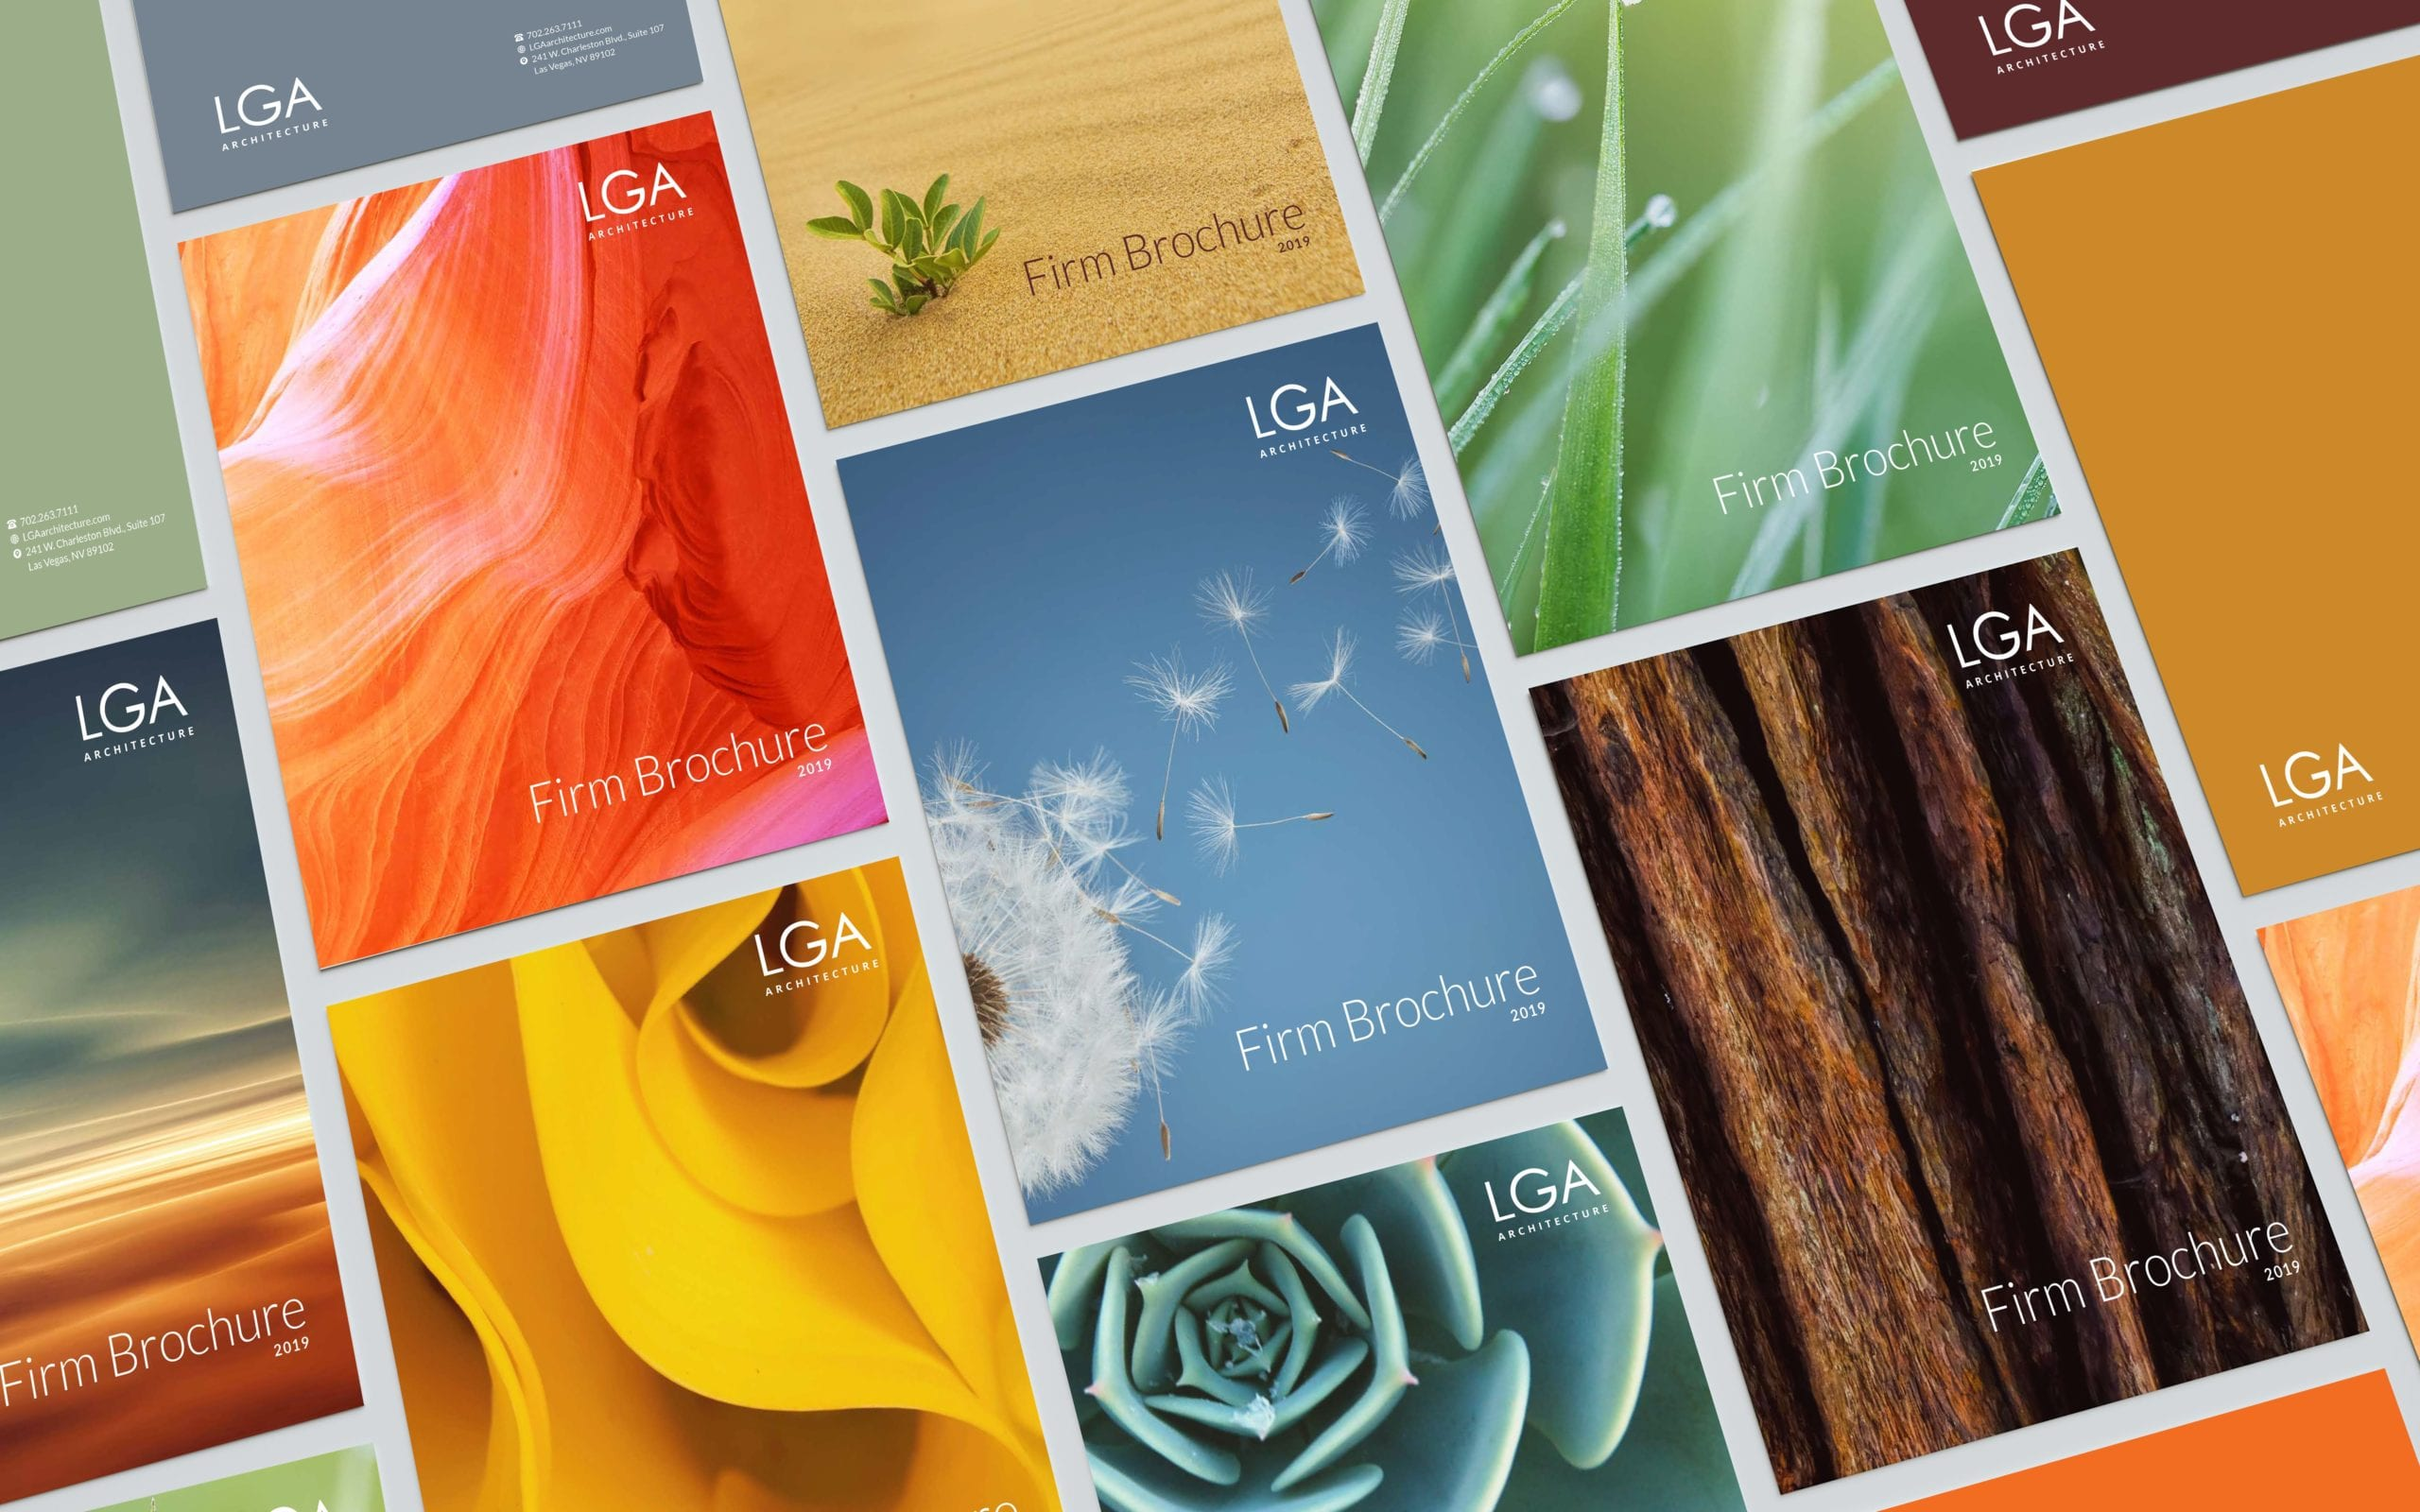 A wallpaper of the LGA Architecture brochure designed by Canyon Creative